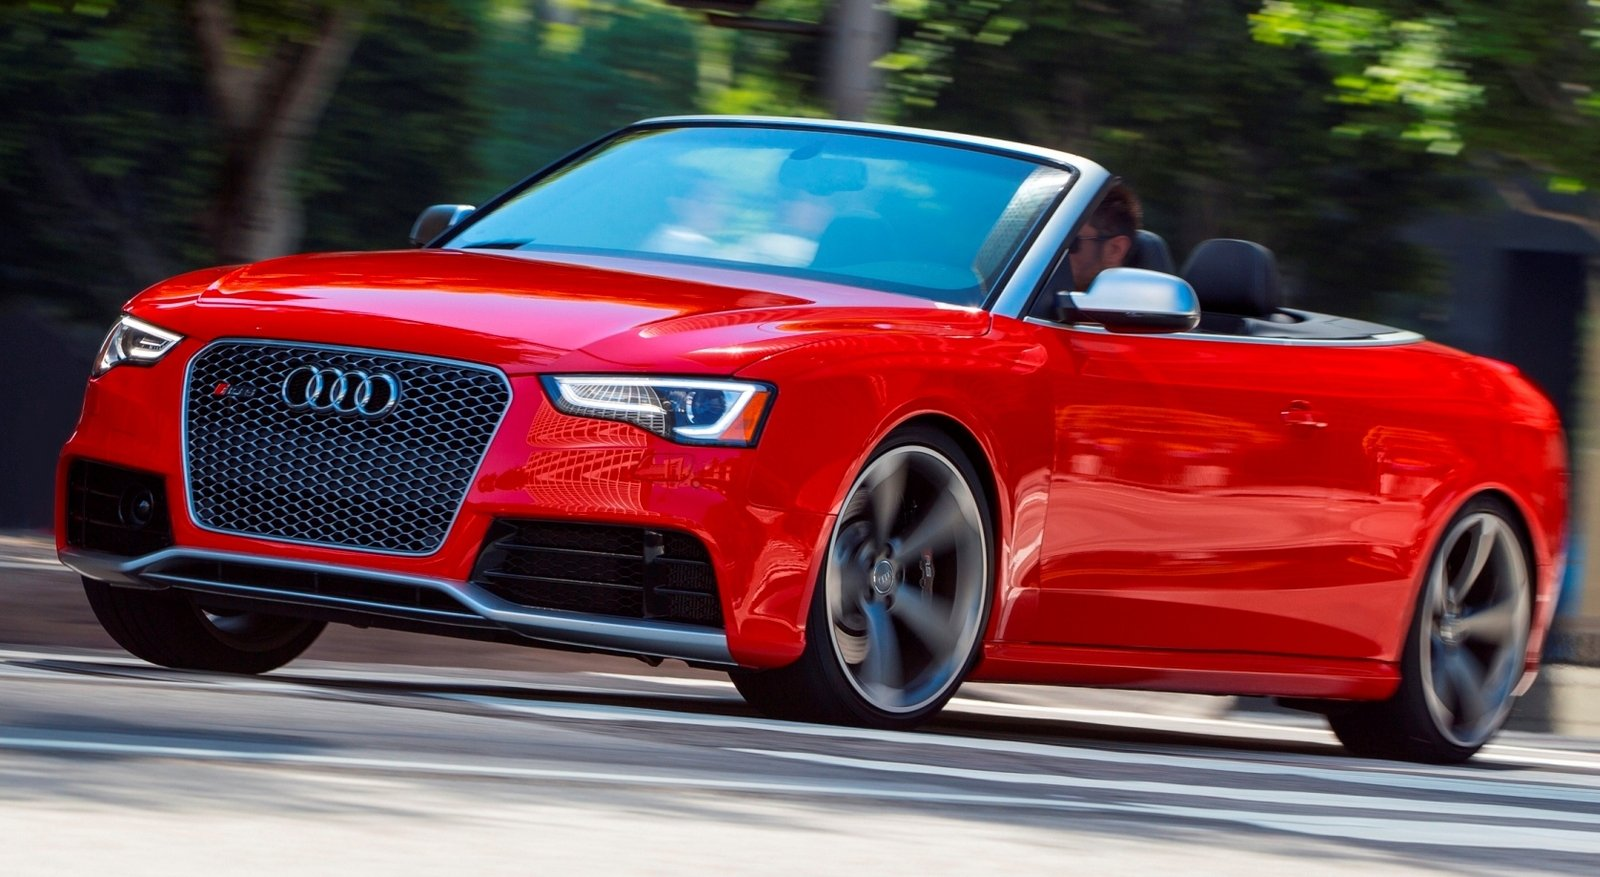 2014 audi rs5 cabriolet review top speed. Black Bedroom Furniture Sets. Home Design Ideas